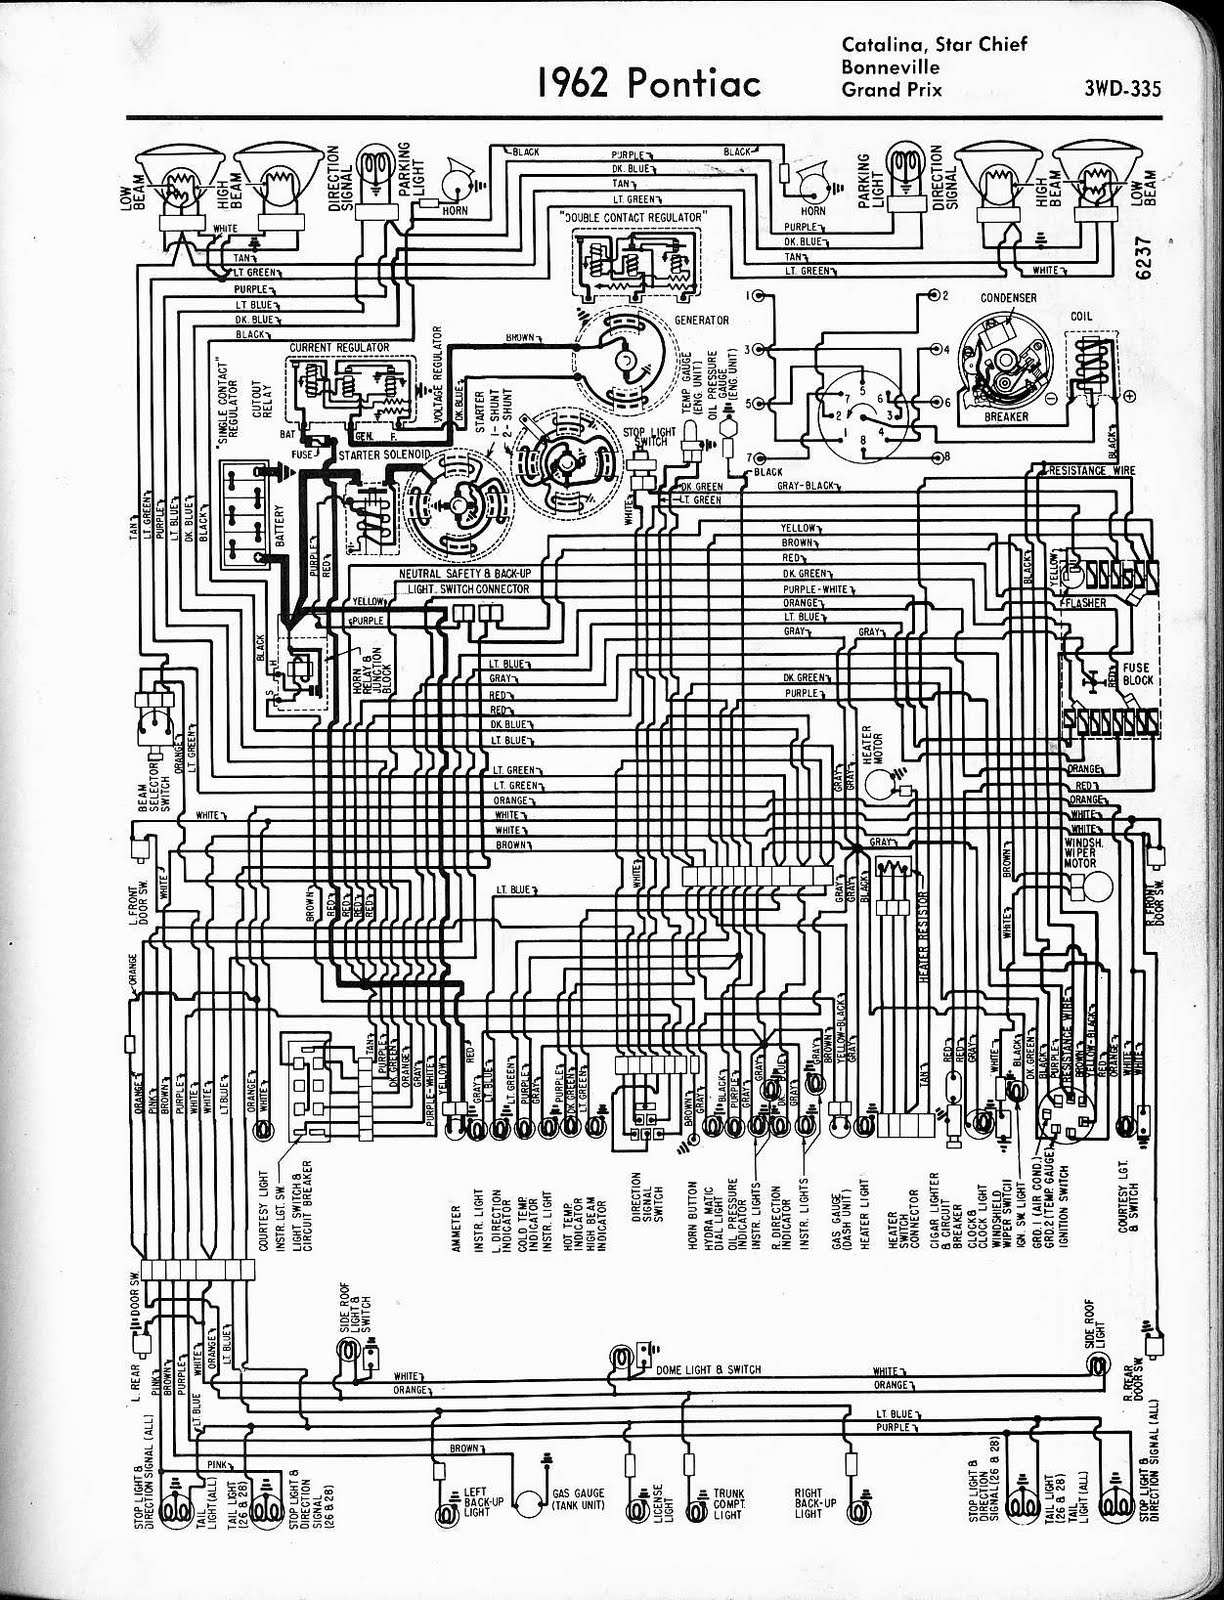 1994 Pontiac Grand Am Fuel System Diagram Books Of Wiring Firebird Fuse Box Free Auto 1962 Catalina Star